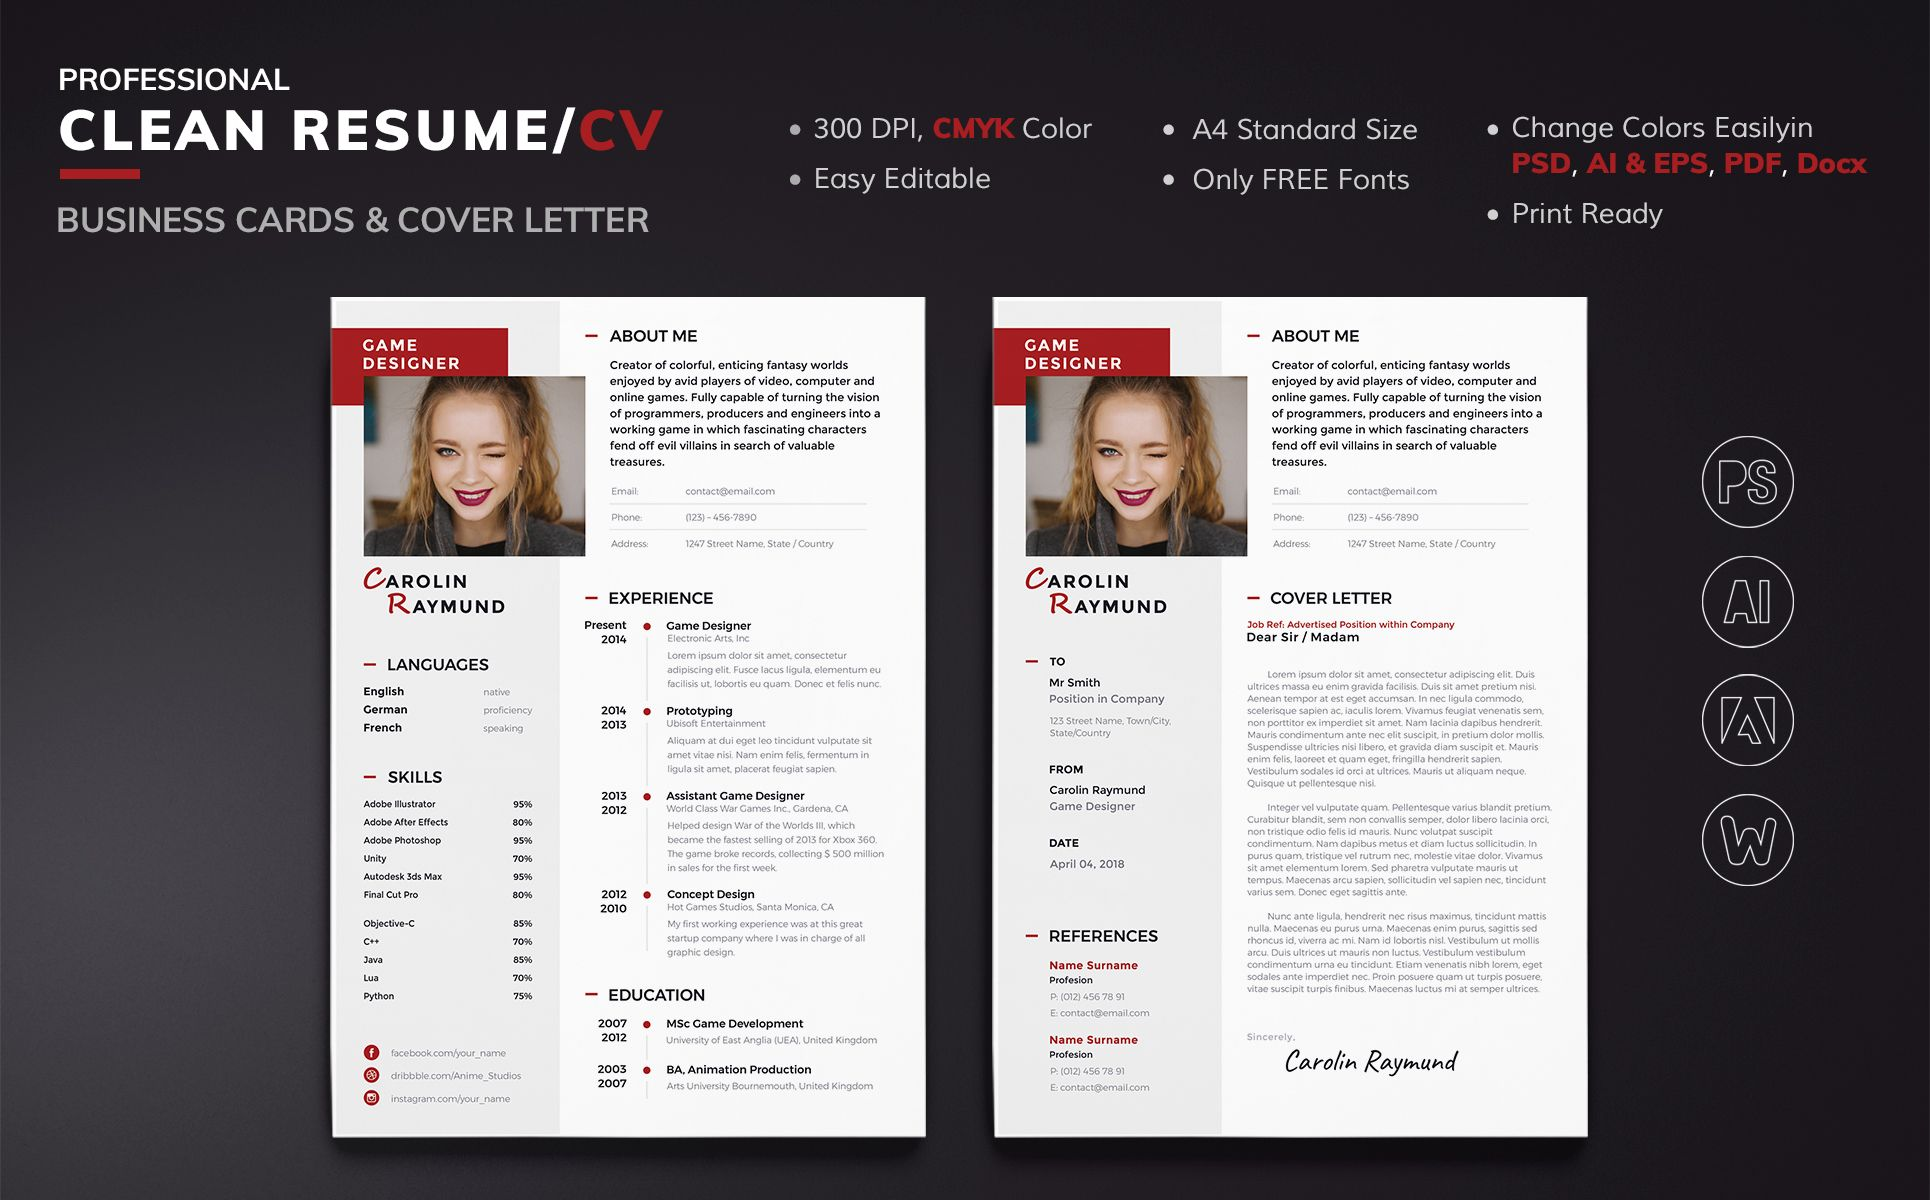 Carolin Raymund Game Designer Resume Template 68281 Resume Design Game Design Printing Business Cards